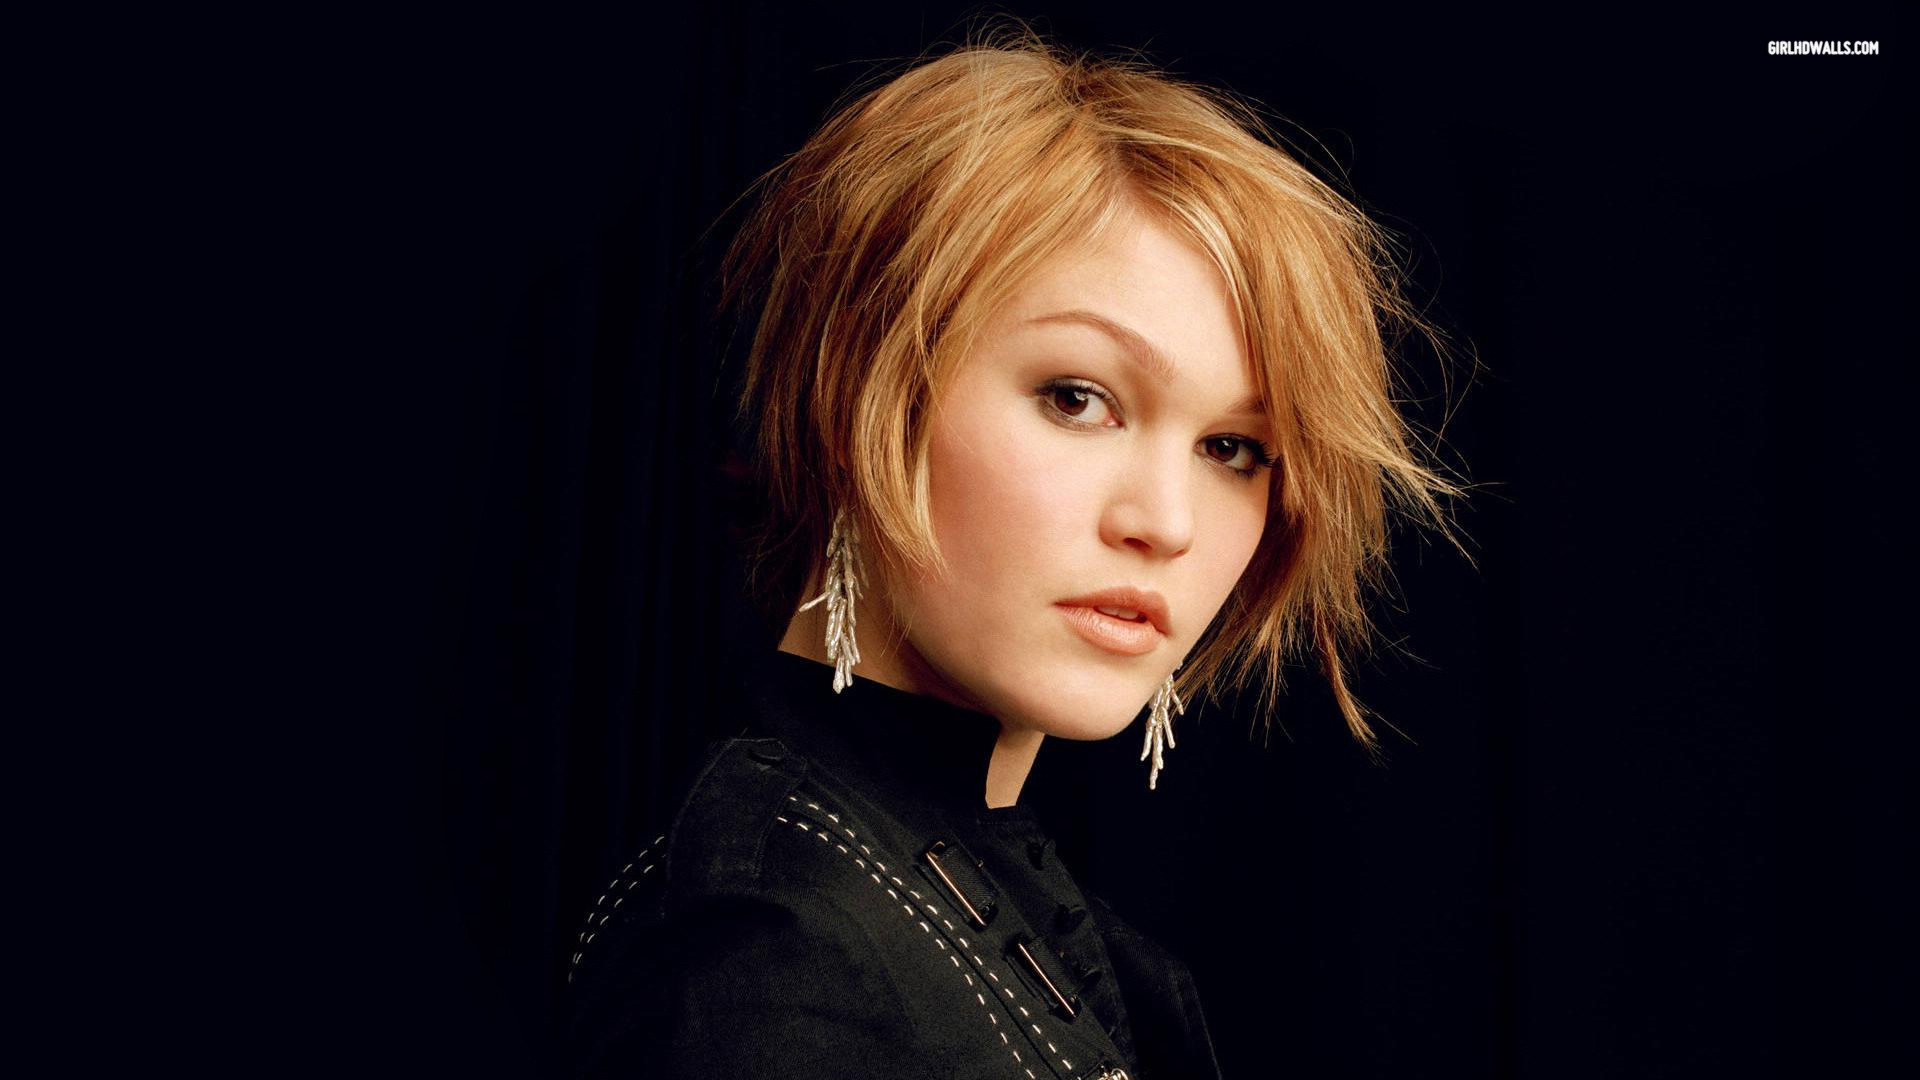 Julia Stiles Wallpapers Hd